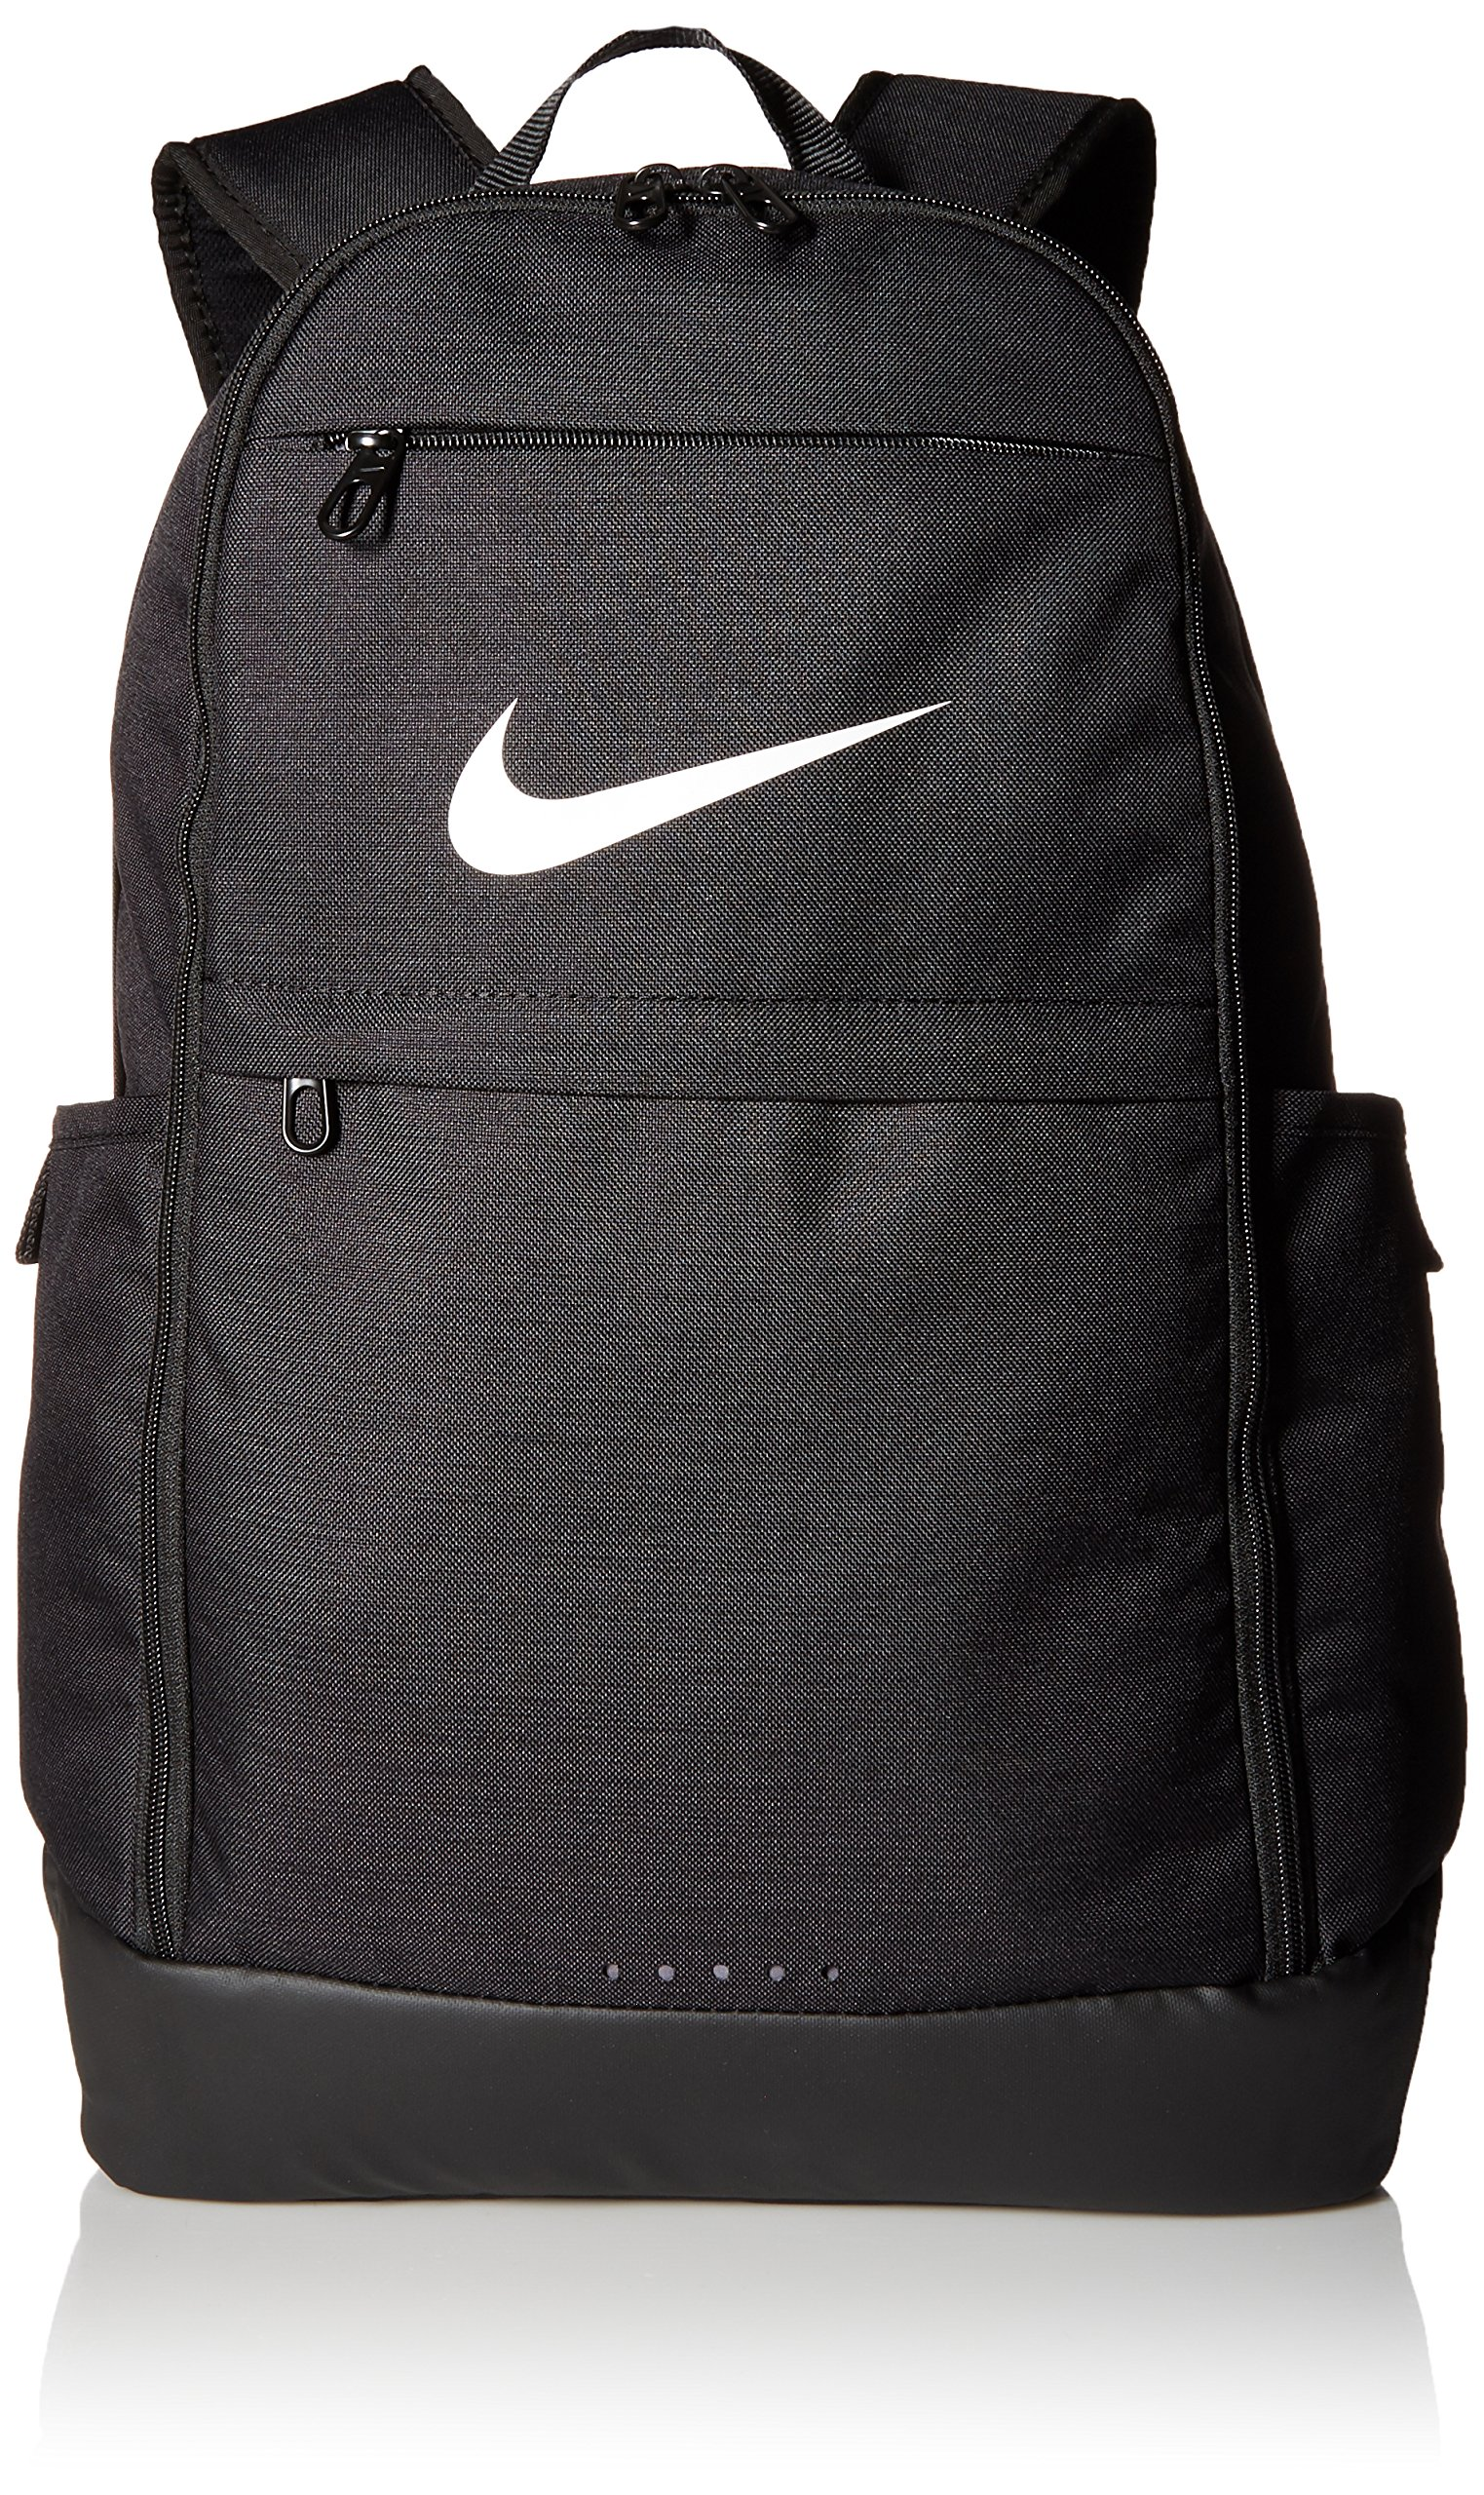 Nike Brasilia Training Backpack, Extra Large Backpack Built for Secure Storage with a Durable Design, Black/Black/White by Nike